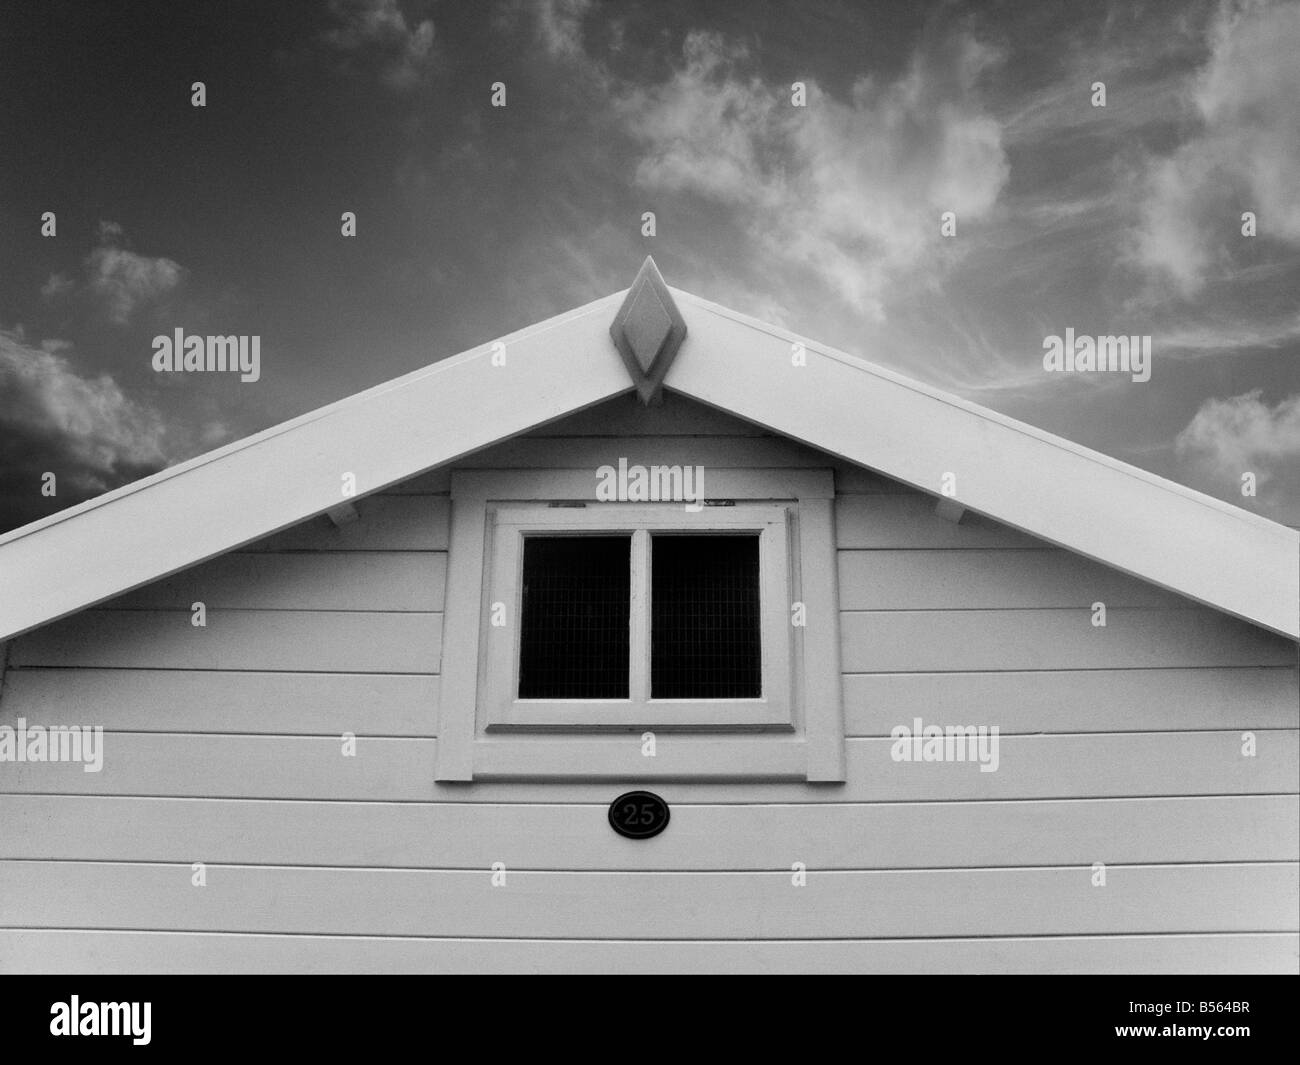 Beach hut looking towards the sky on East Devon Coast in black and white - Stock Image